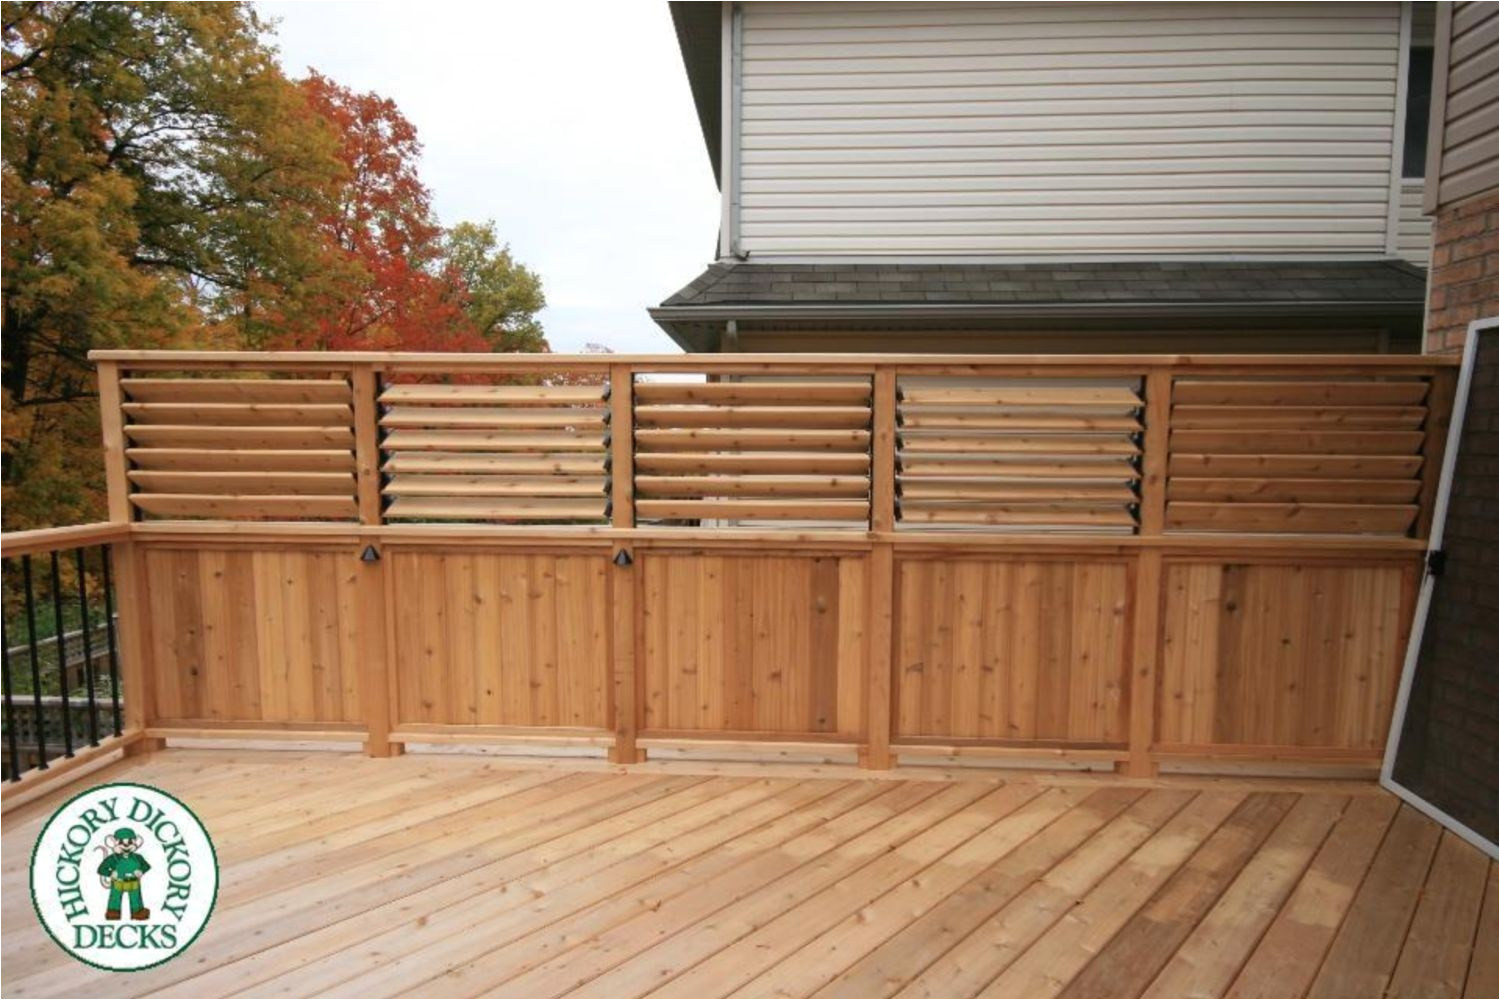 cheap diy privacy fence ideas 58 jpg